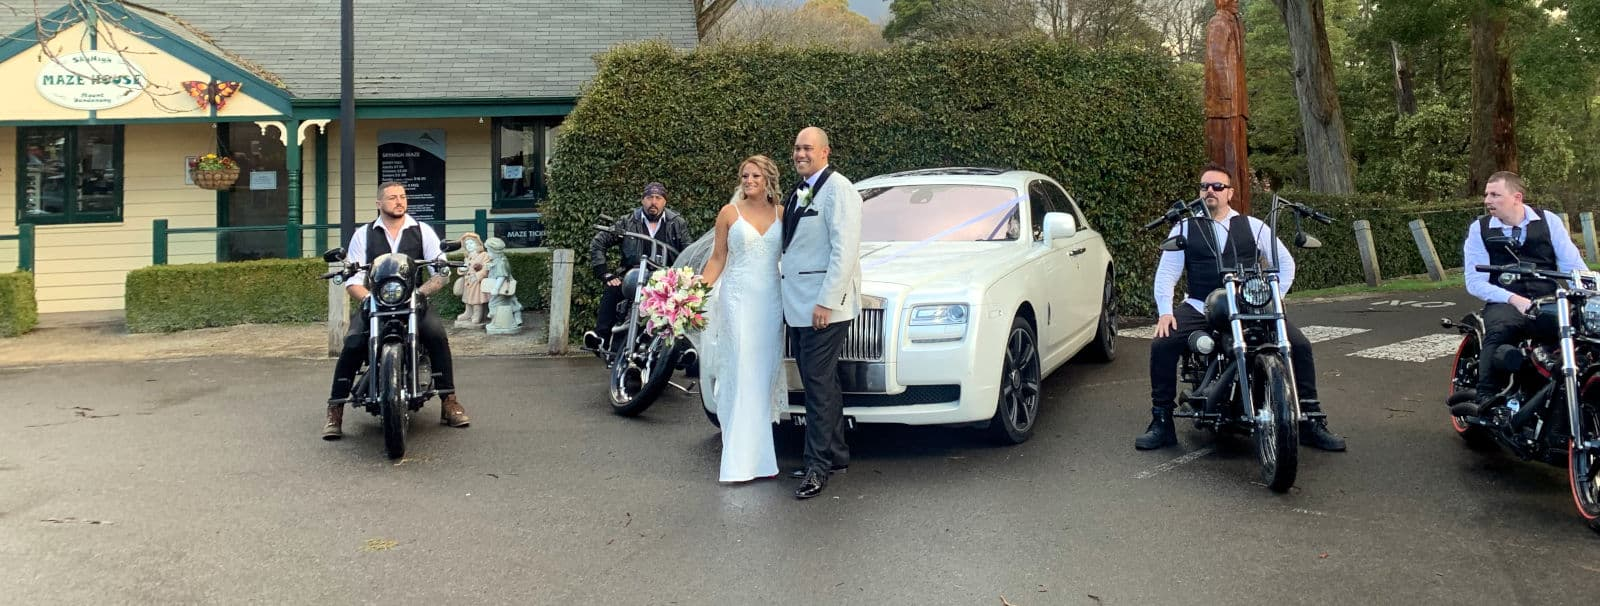 White-wedding-with-Harley-escort